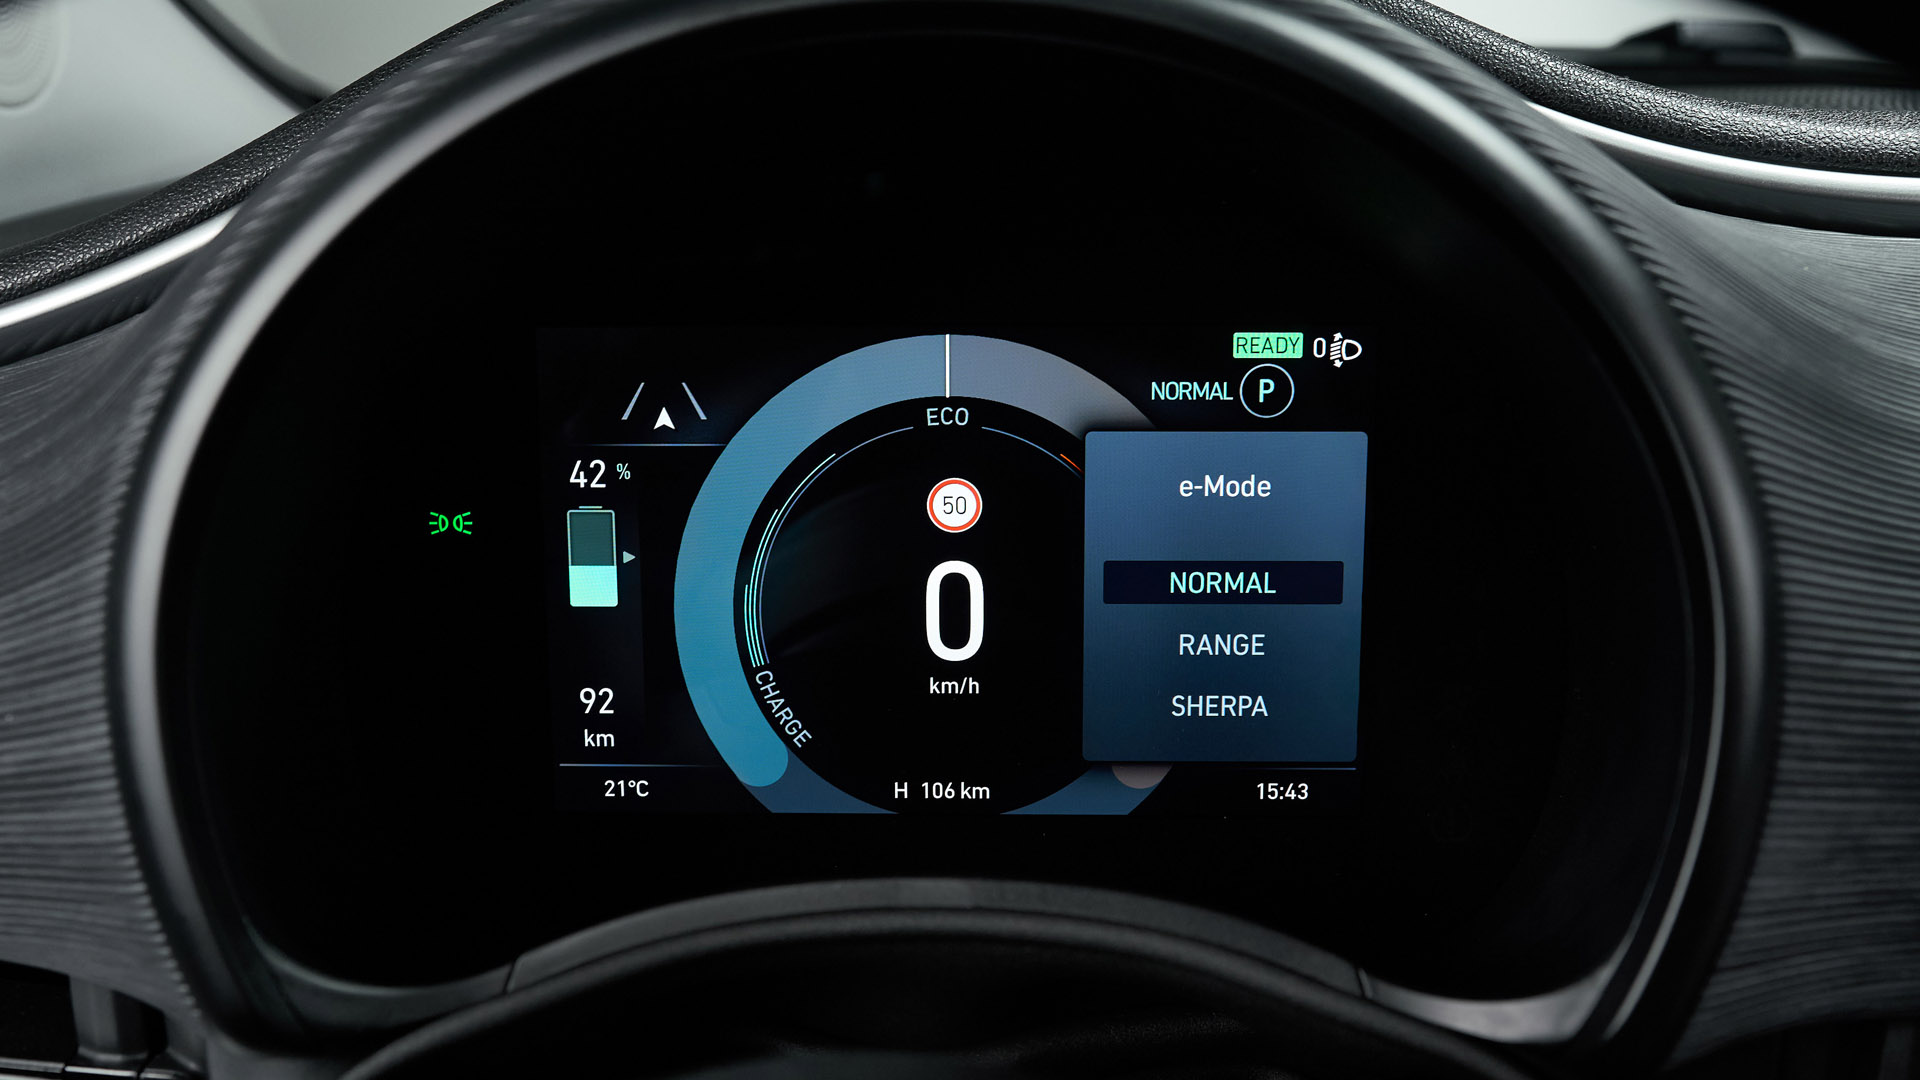 Fiat 500 Electric drive modes